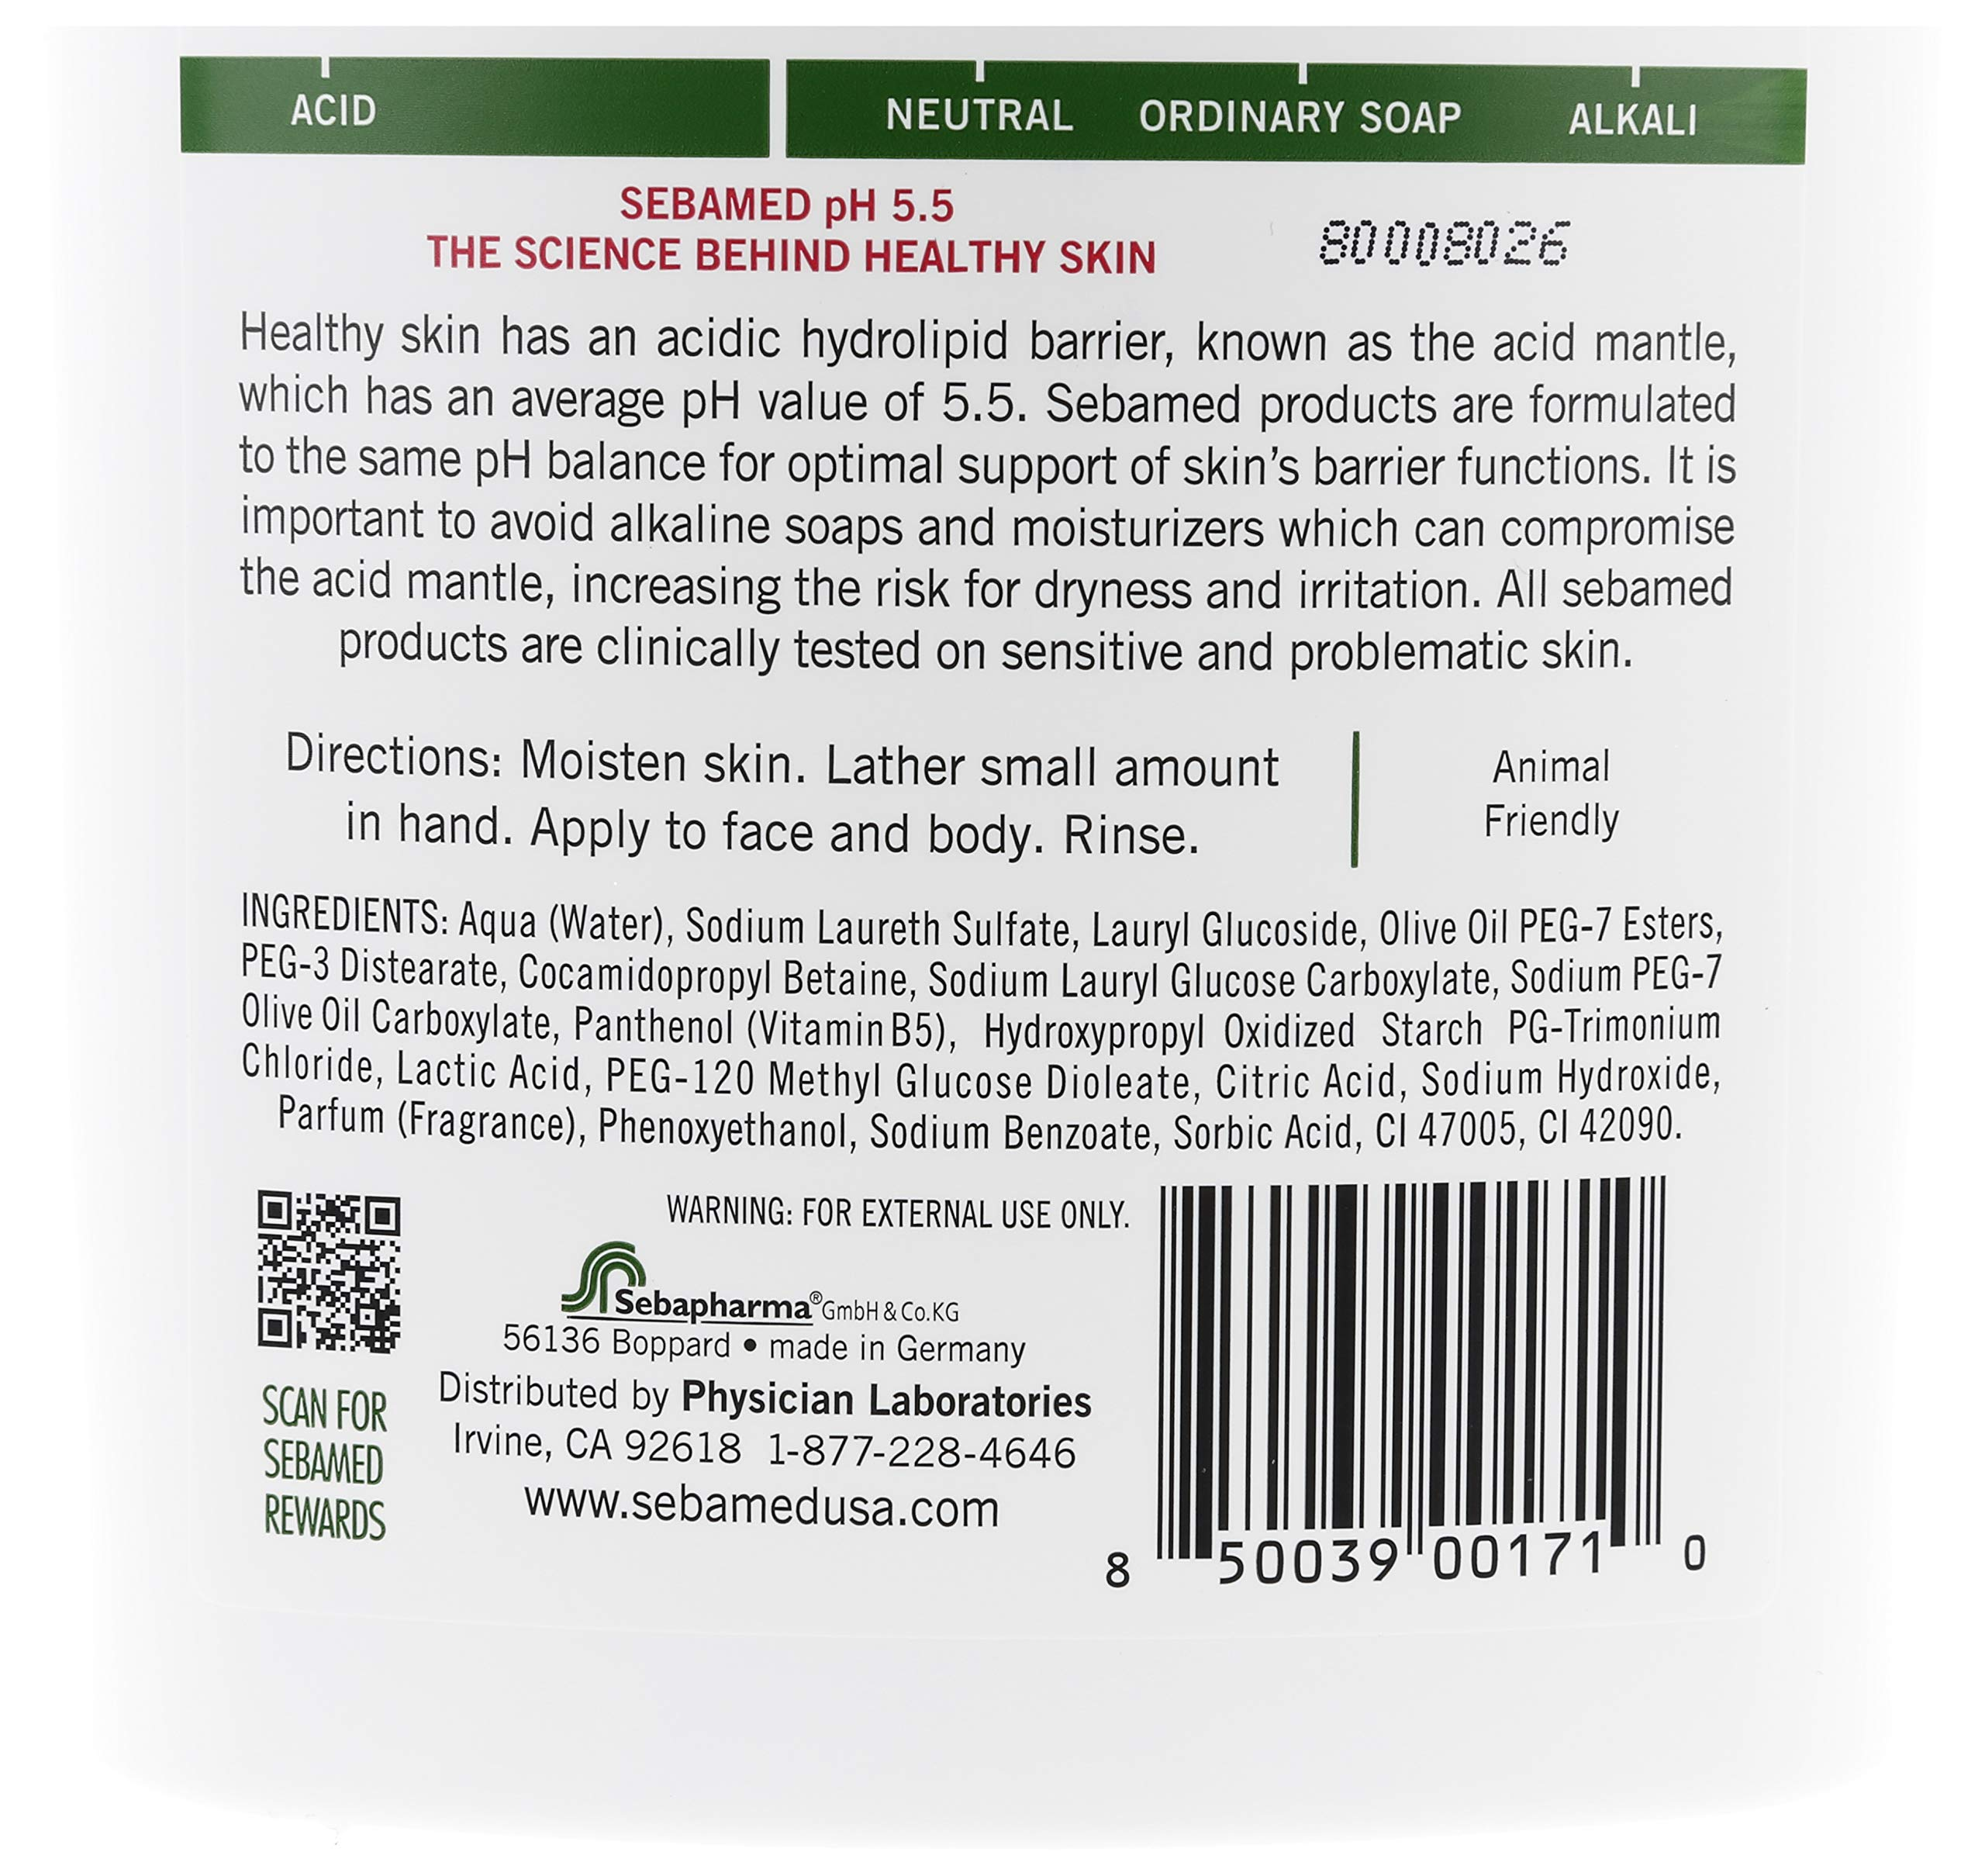 Sebamed Olive Face and Body Wash With Pump for Sensitive and Delicate Skin pH 5.5 Ultra Mild Hydrating Dermatologist Recommended Cleanser 33.8 Fluid Ounces (1 Liter) Pack of 2